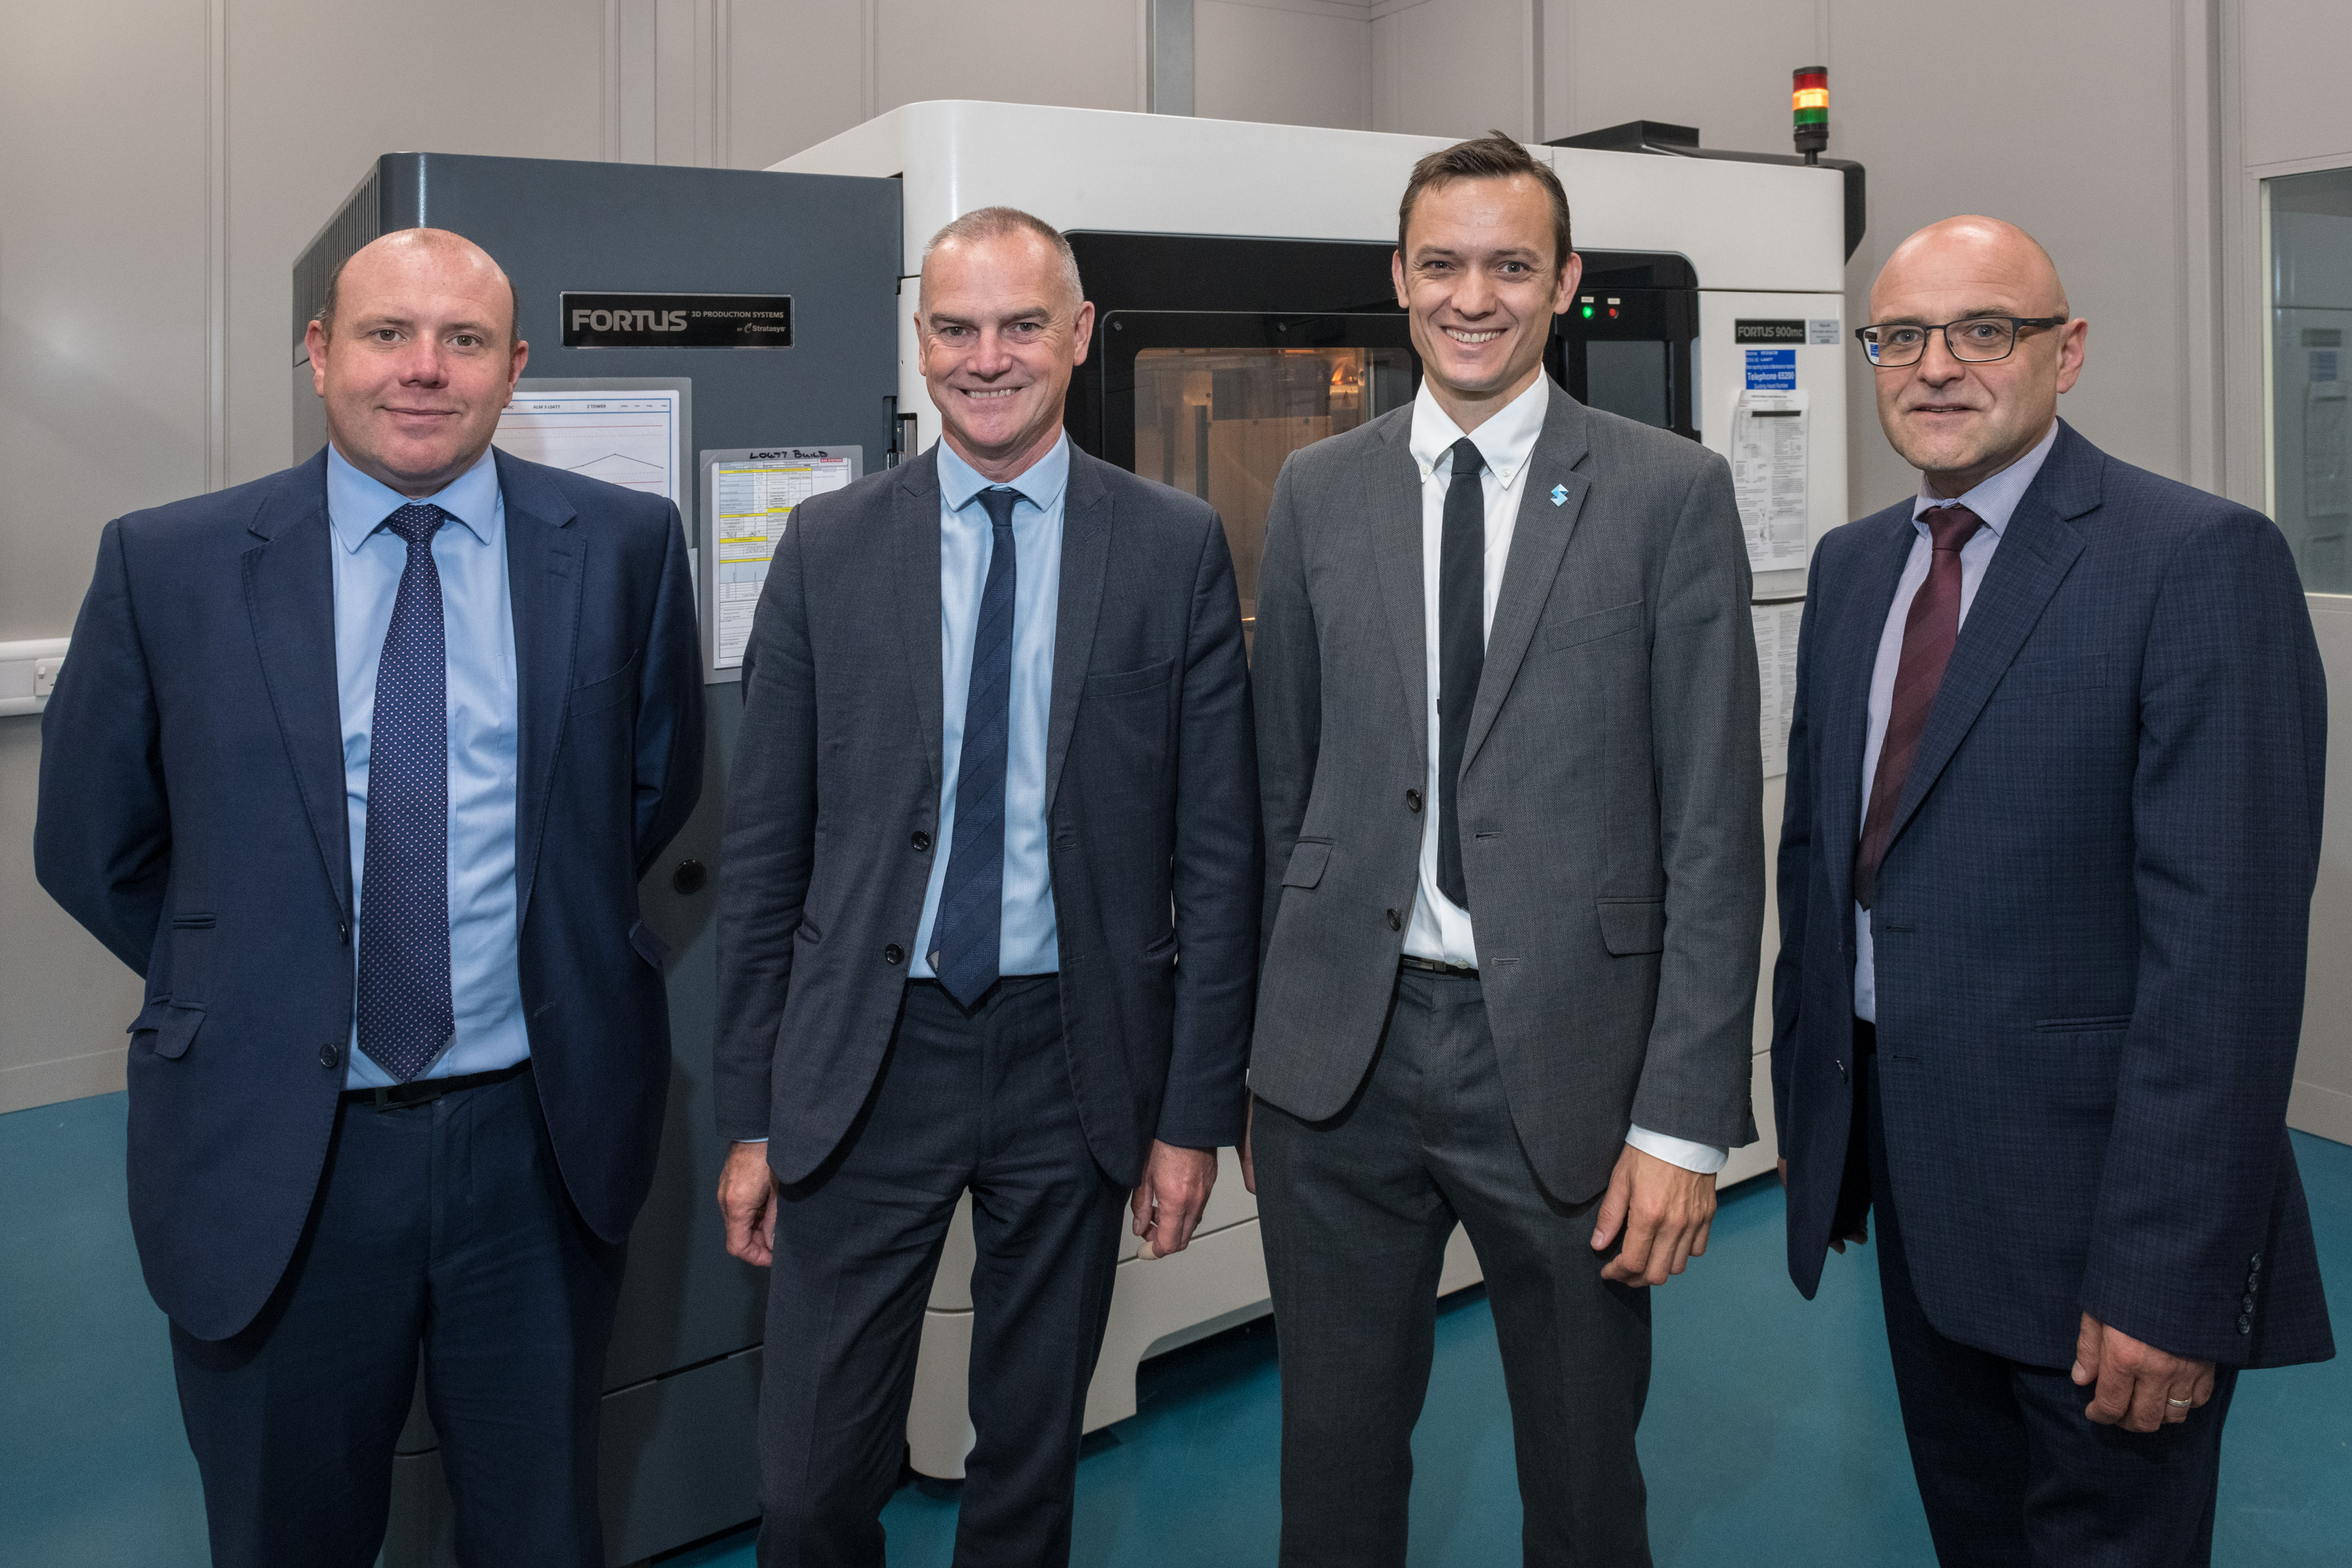 Ian Barton, head of strategy & investment planning, BAE Systems; Andrew Schofield, head of manufacturing & materials engineering, BAE Systems; Yann Rageul, head of strategic accounts for EMEA at Stratasys; and Simon Whitaker, technology operations manager at BAE Systems.